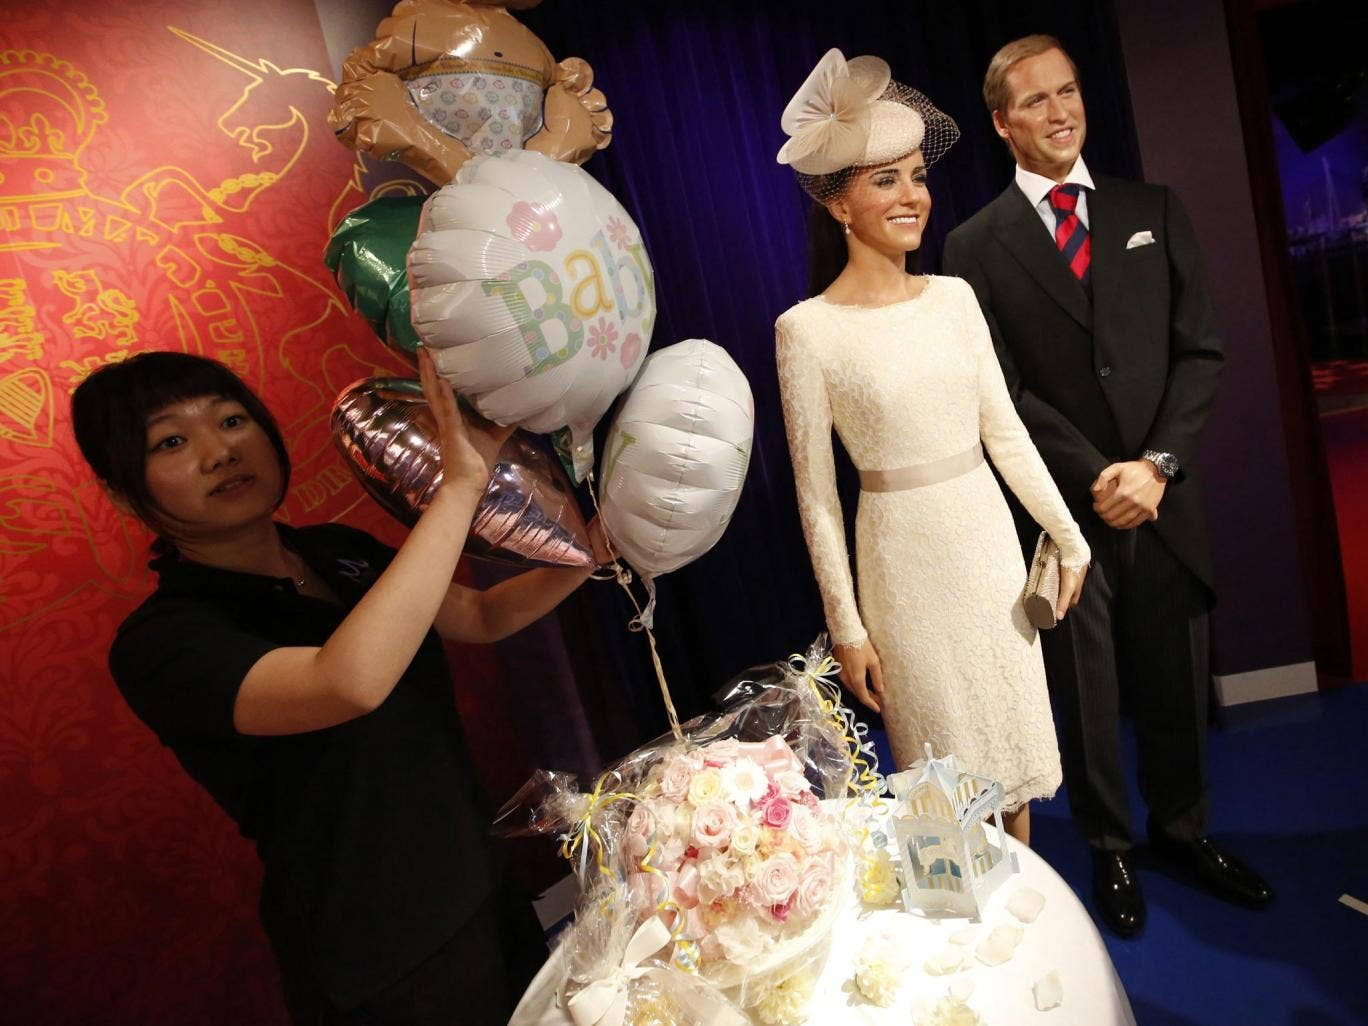 A staff member of the Madame Tussauds Tokyo wax museum prepares decorations next to the wax figures of Britain's Prince William and his wife Catherine